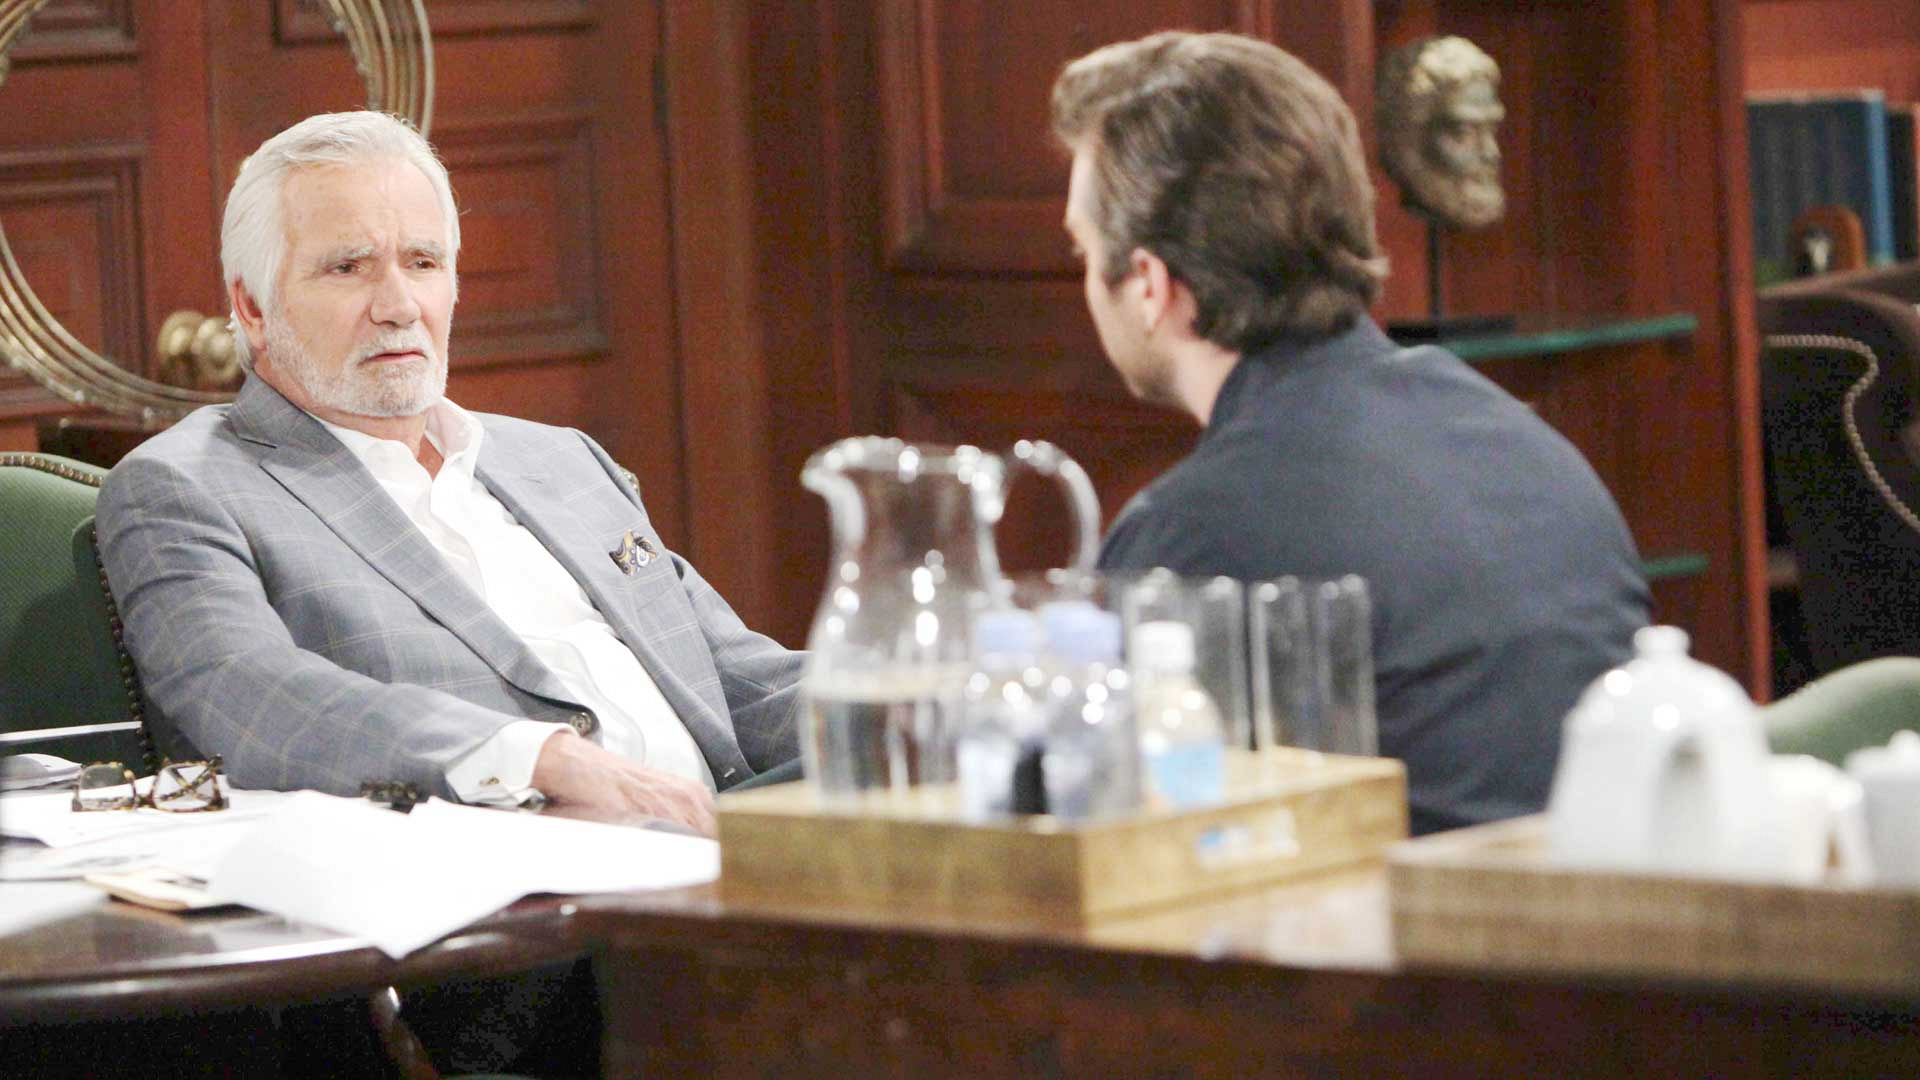 Eric makes a last-ditch effort to convince Thomas to remain at Forrester Creations with his family.